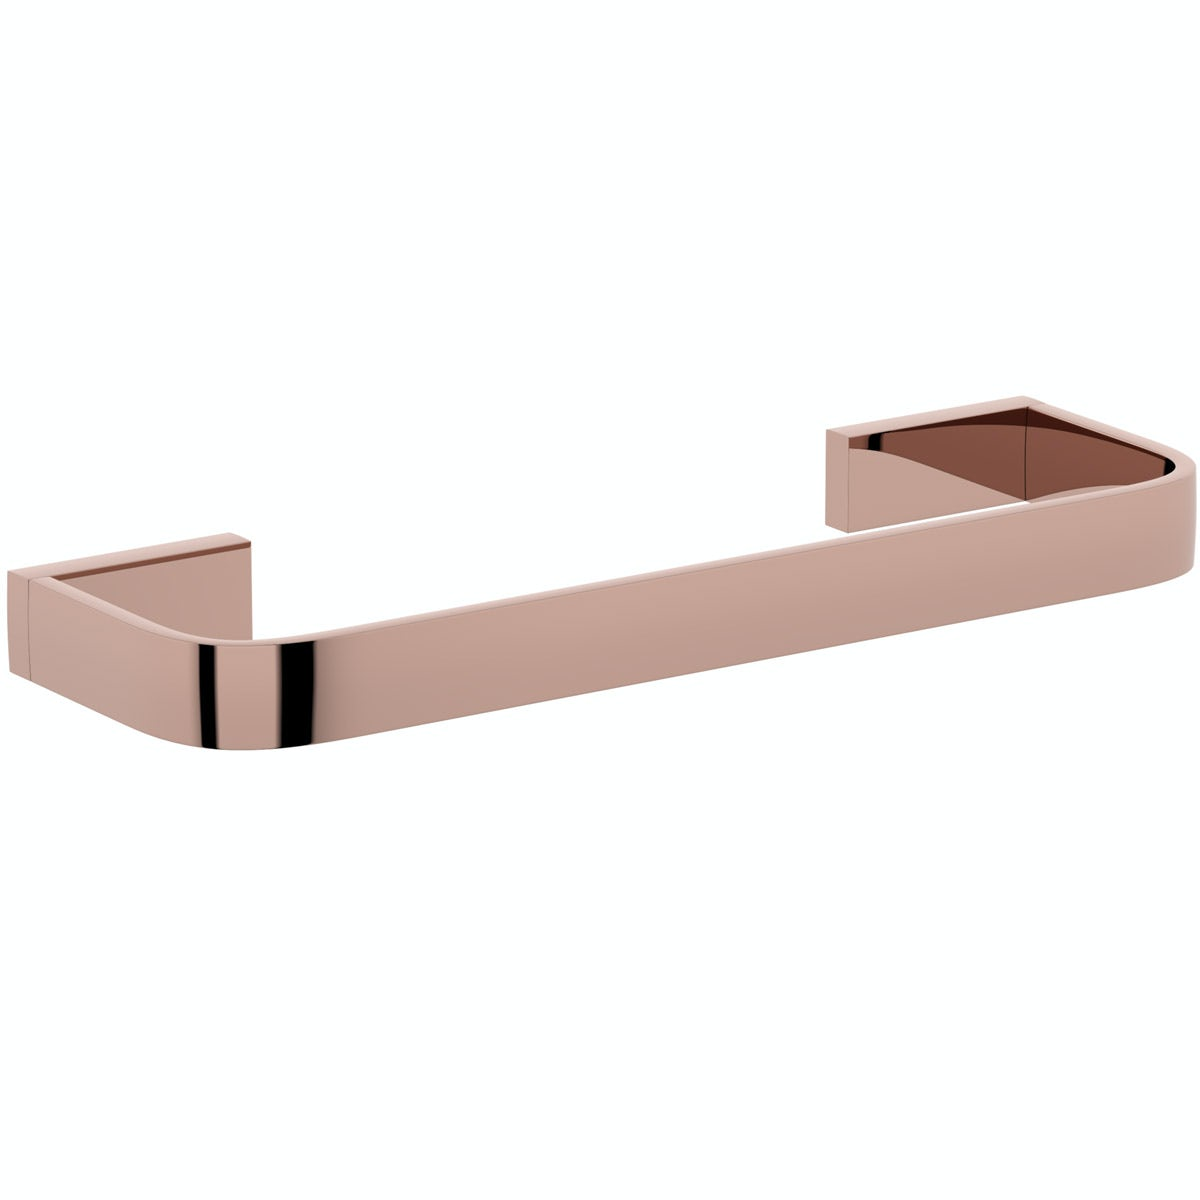 Mode Spencer rose gold towel rail